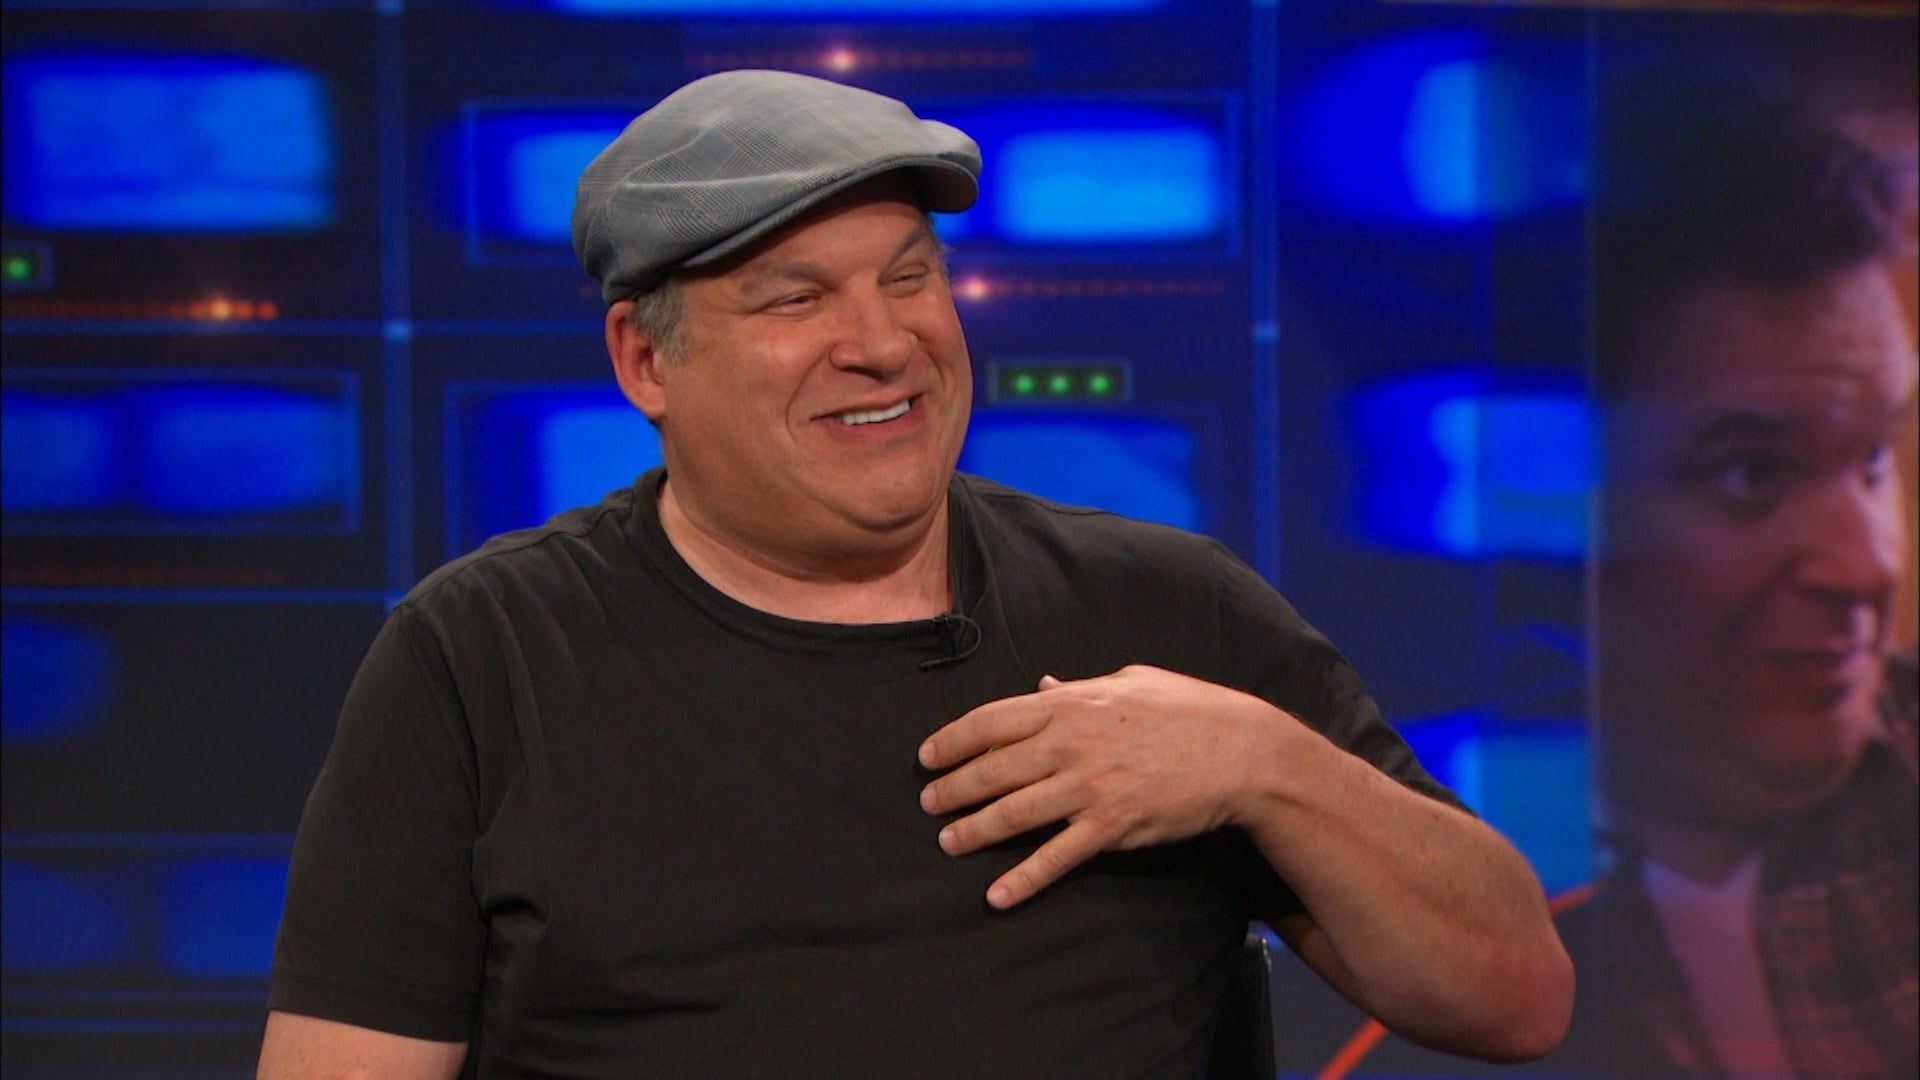 The Daily Show with Trevor Noah Season 20 :Episode 93  Jeff Garlin